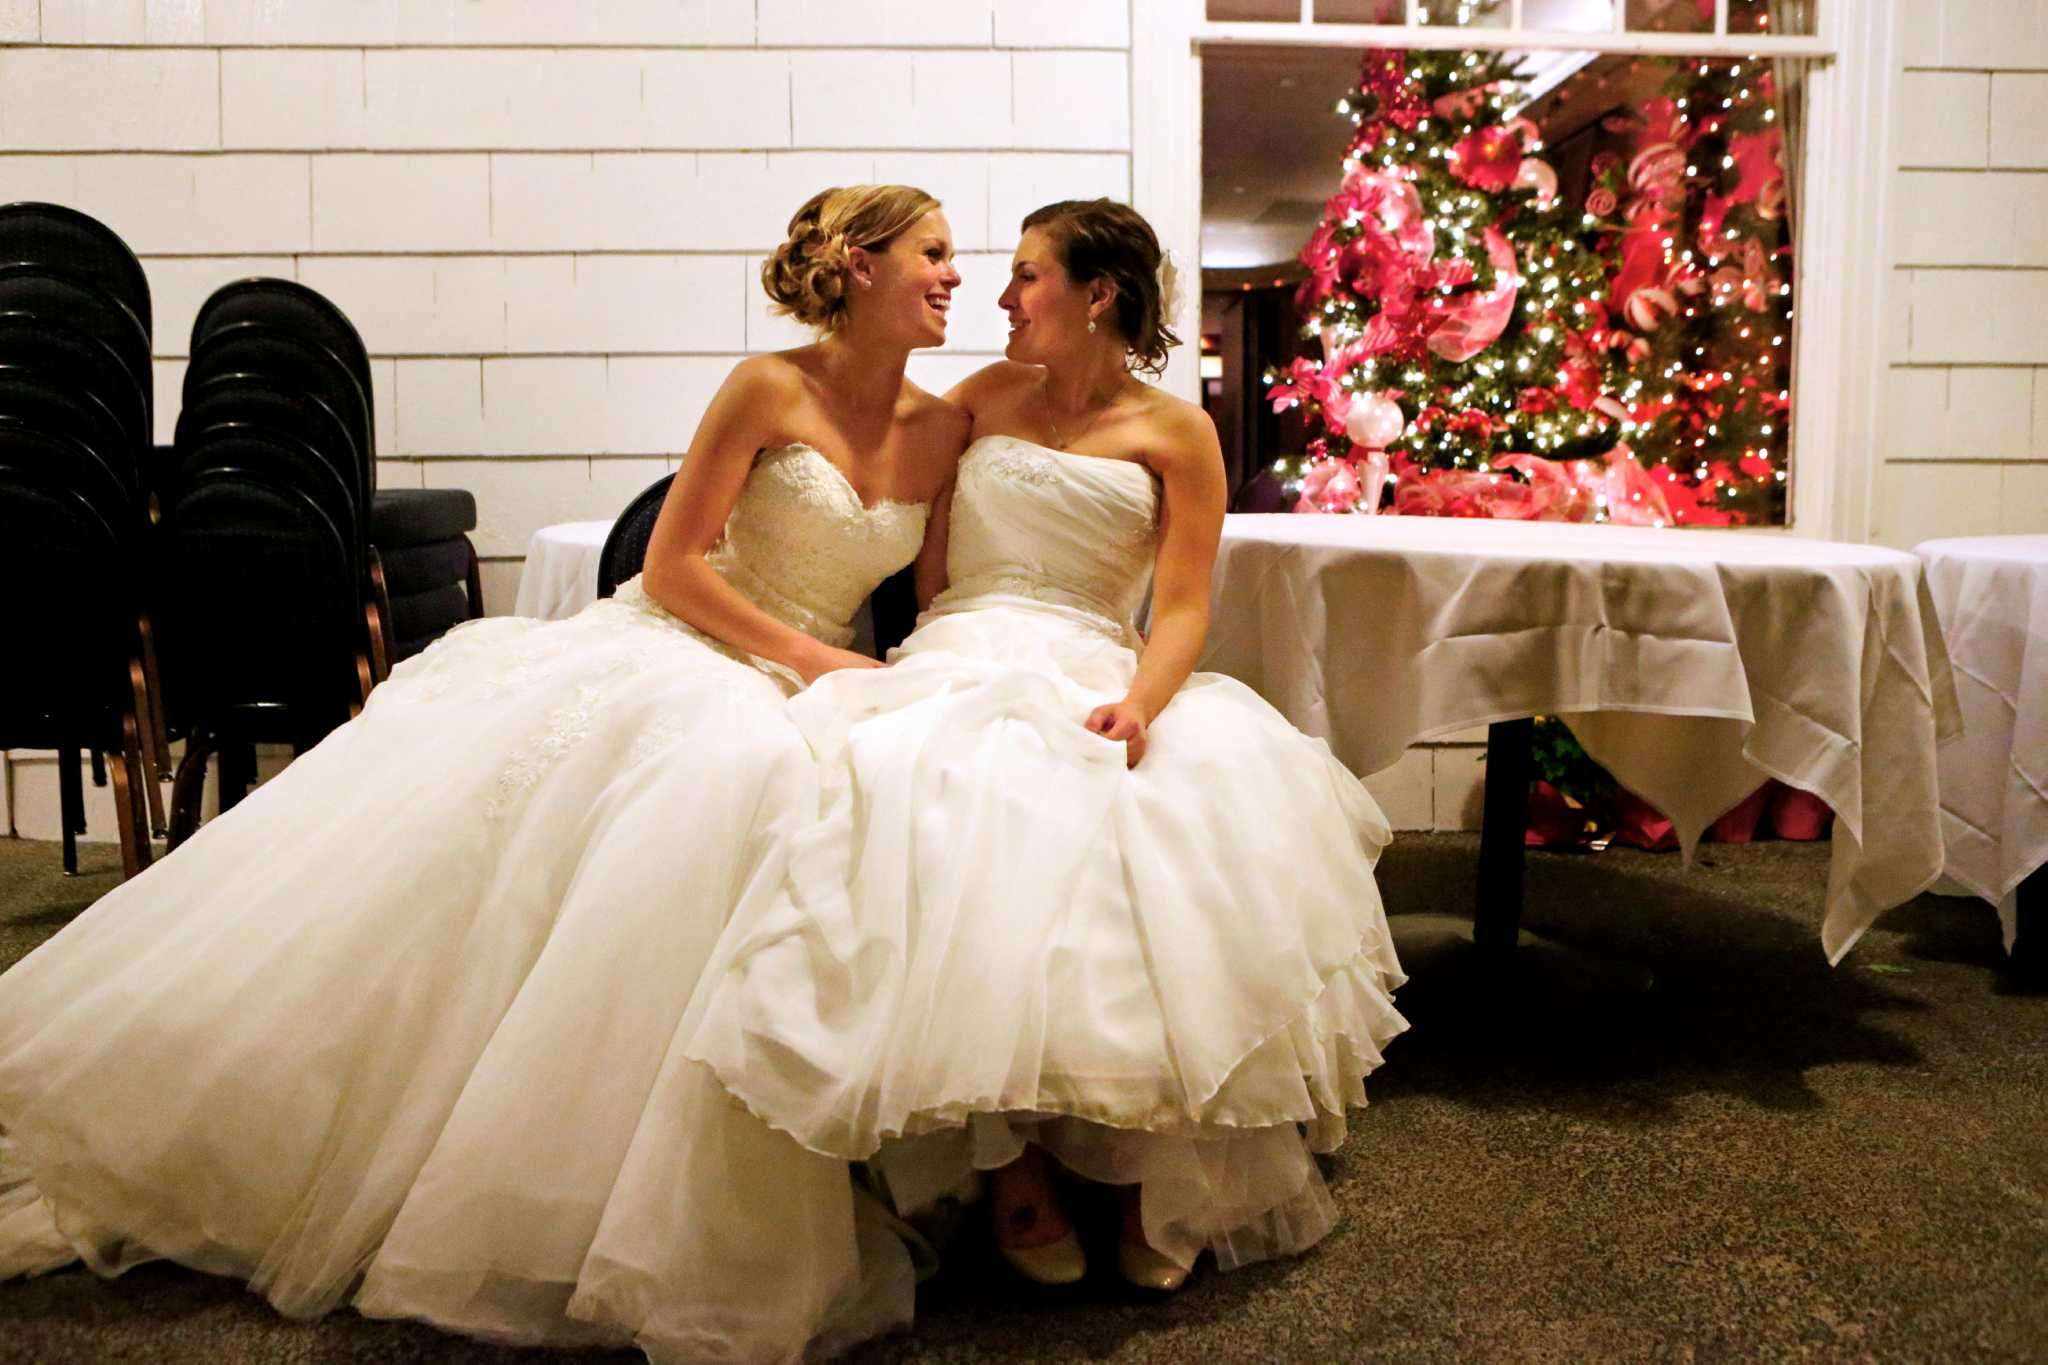 Majority of americans continue to oppose gay marriage